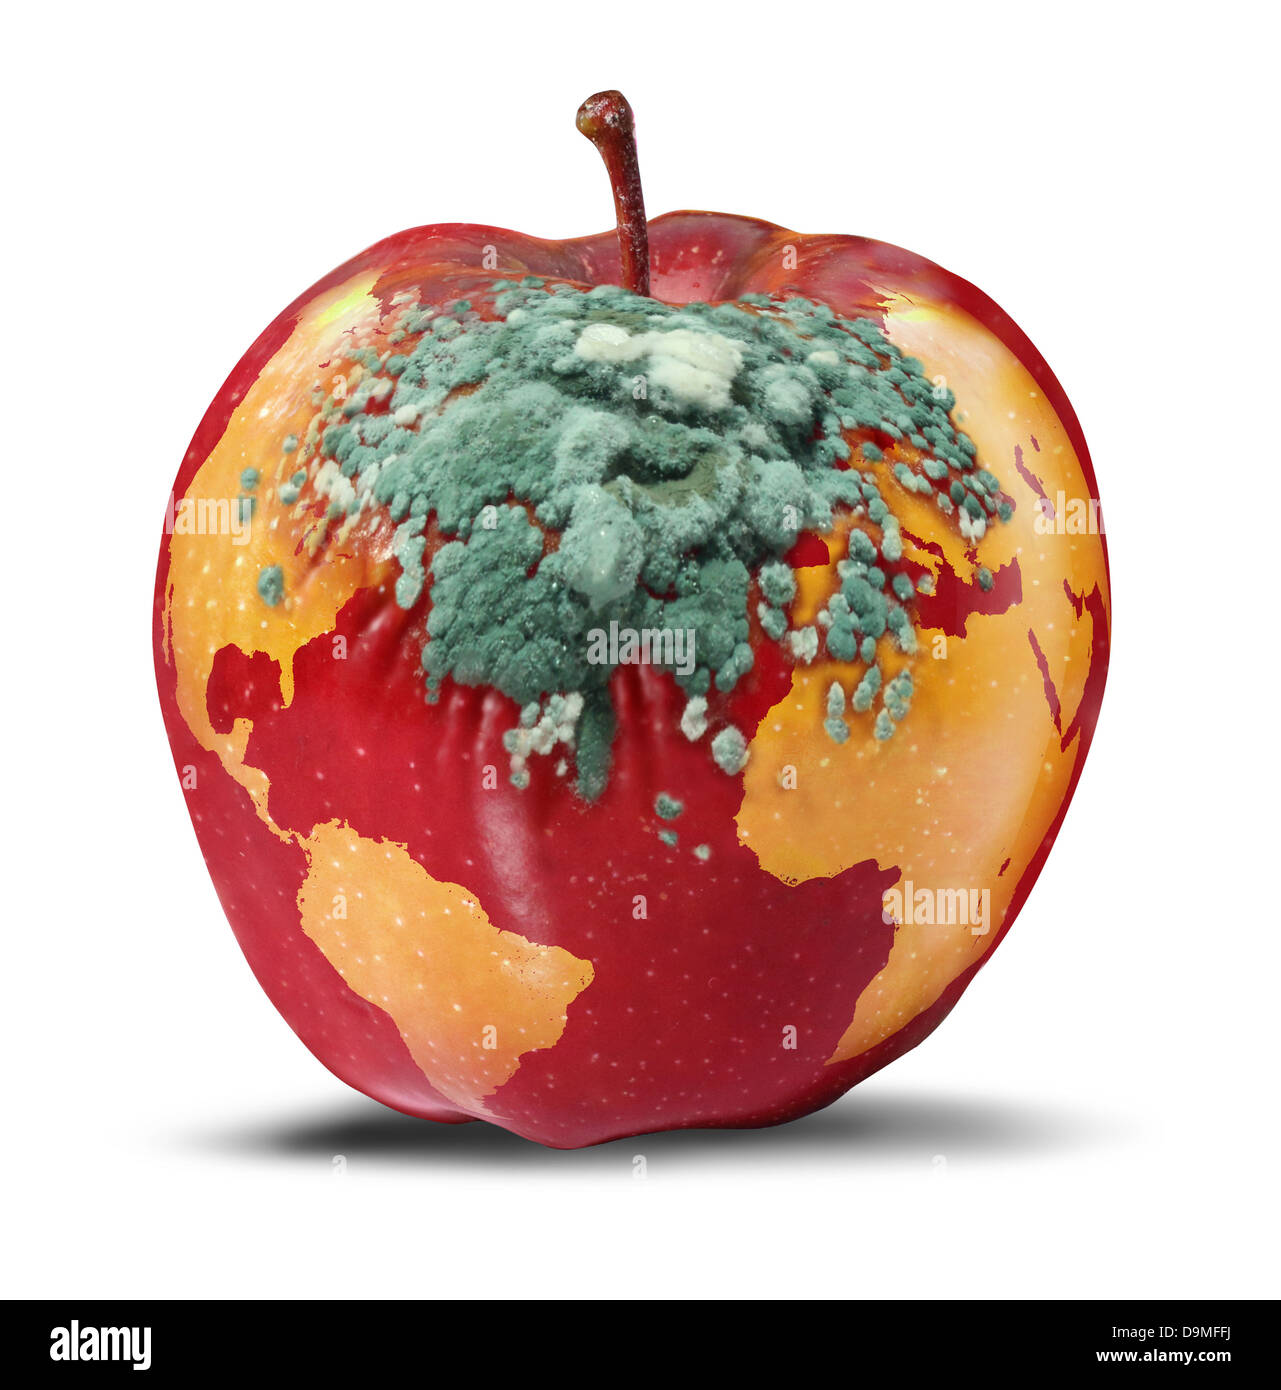 Global problems and environmental Issues concerning the health of the planet earth as a decaying red apple with - Stock Image